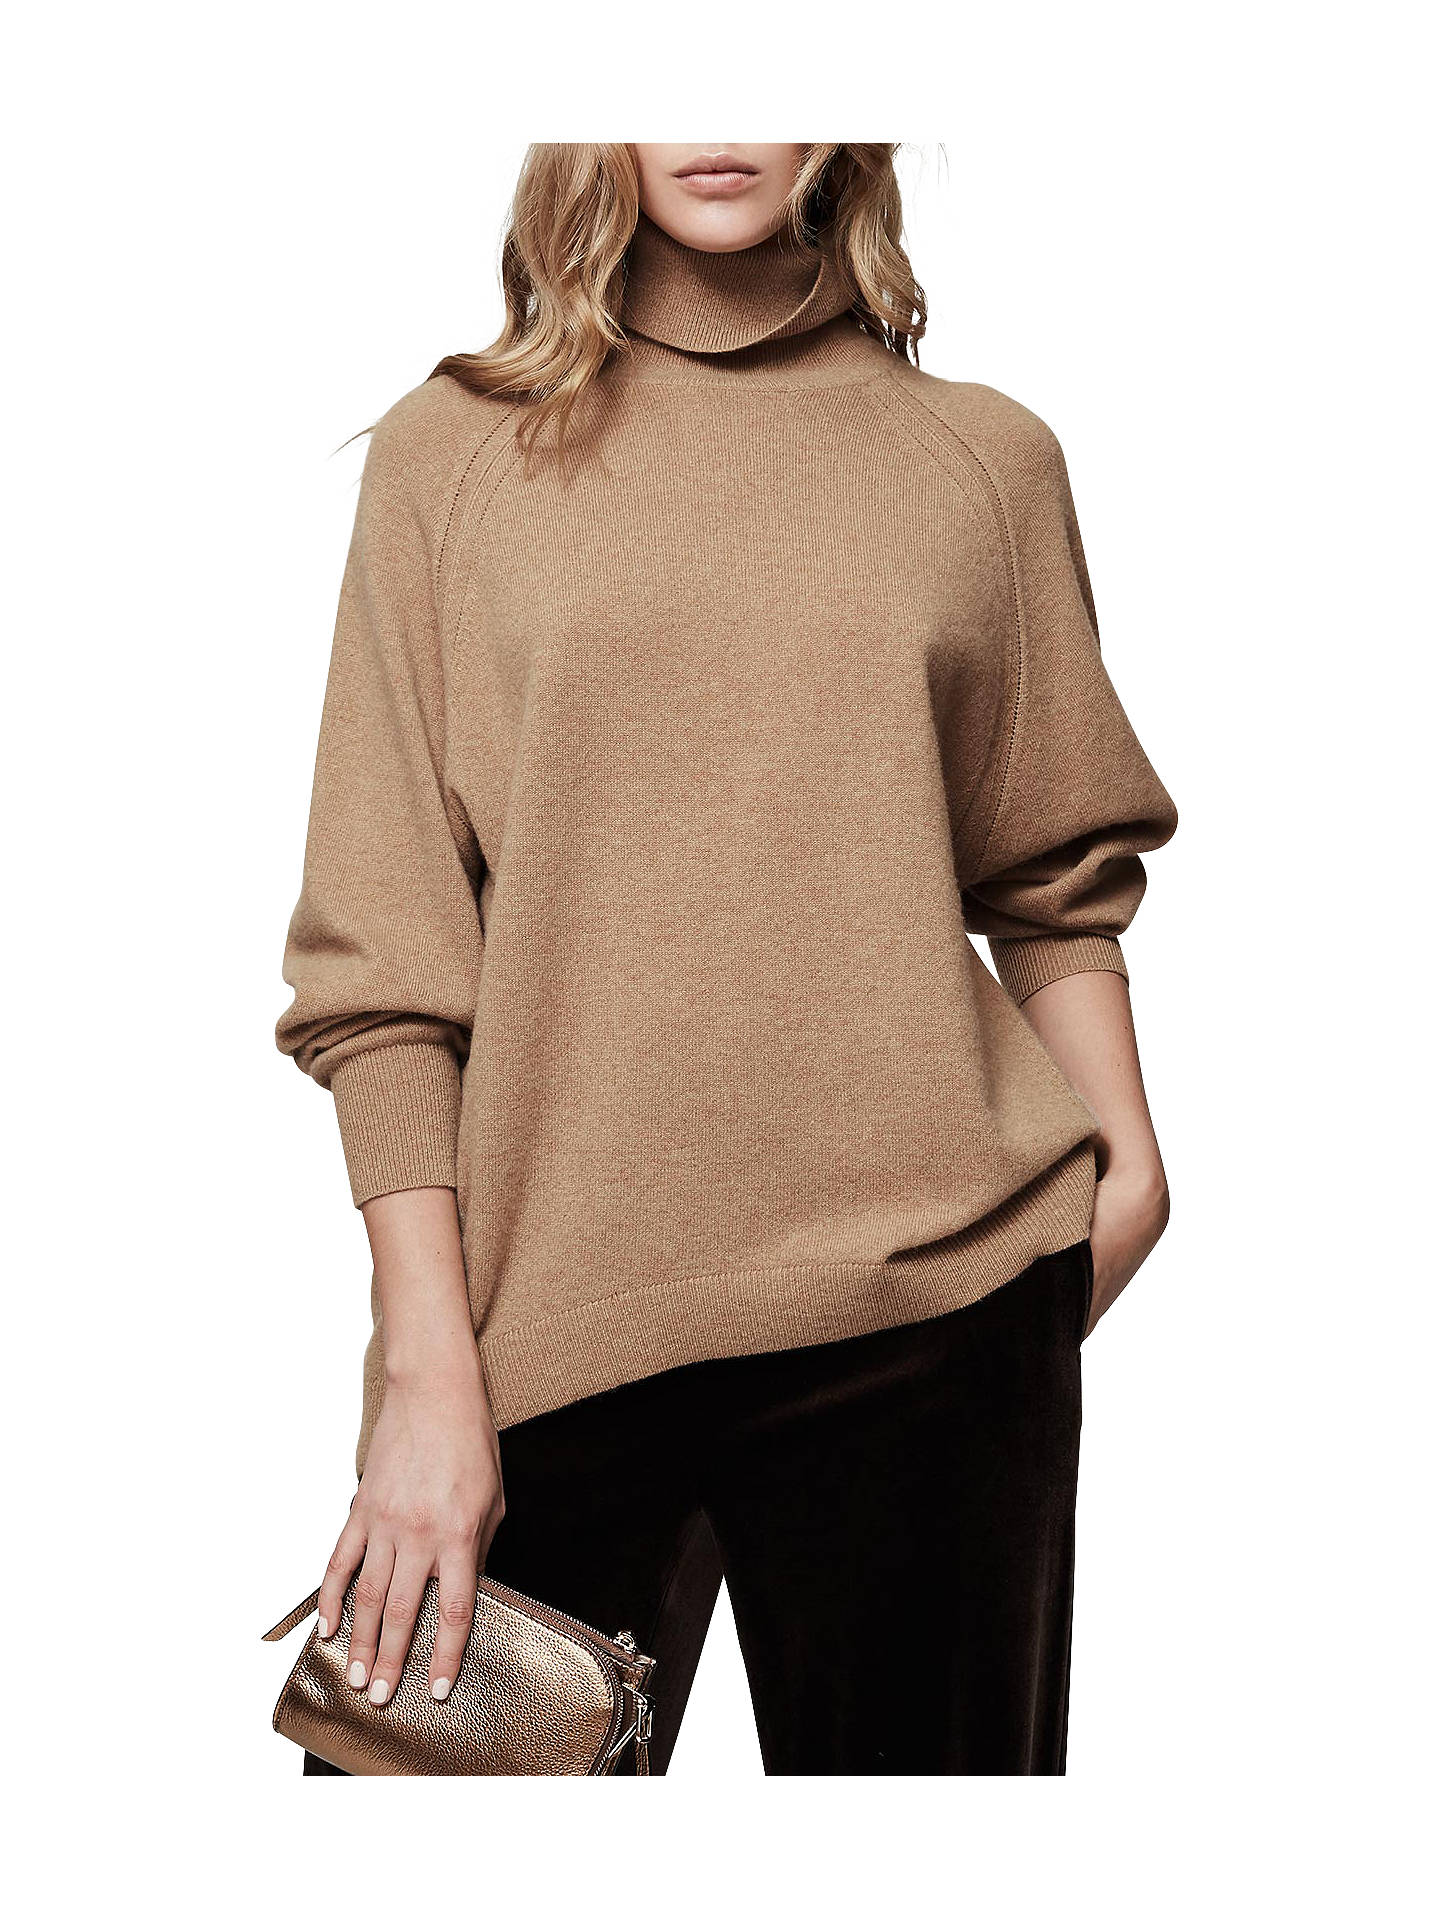 7d42ac0298a Reiss Adira Cashmere Roll Neck Jumper, Camel at John Lewis & Partners